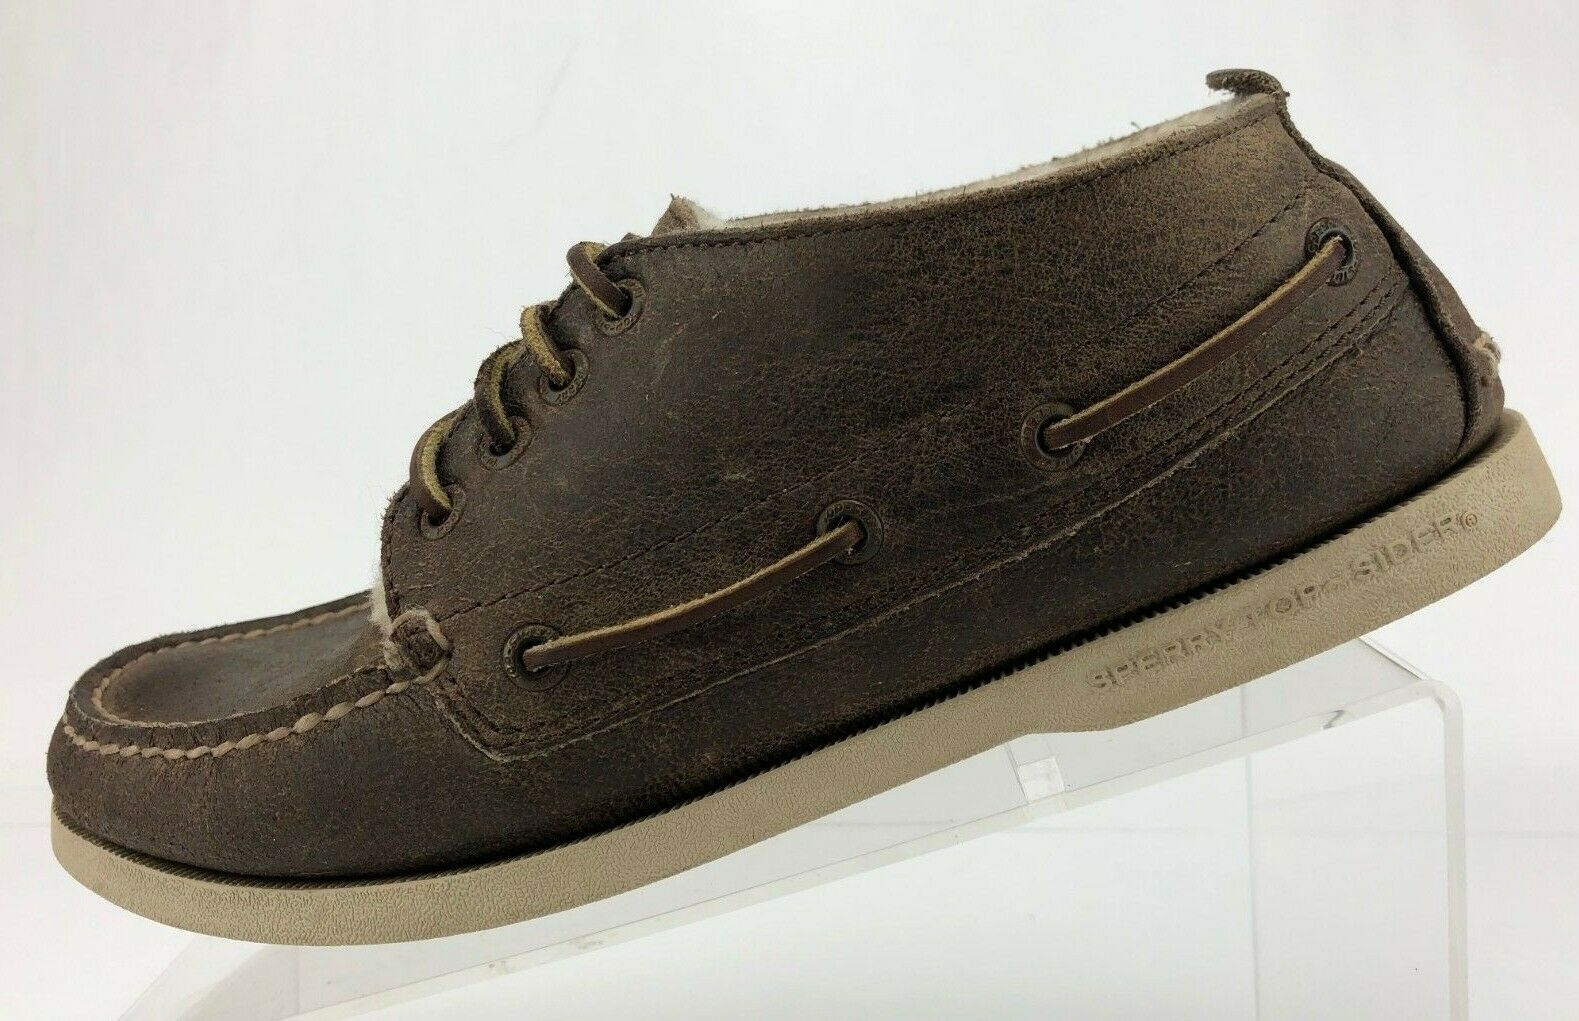 Sperry Top Sider Boat shoes Brown Leather Wool Lining Flat Moc Toe Mens Size 8 M